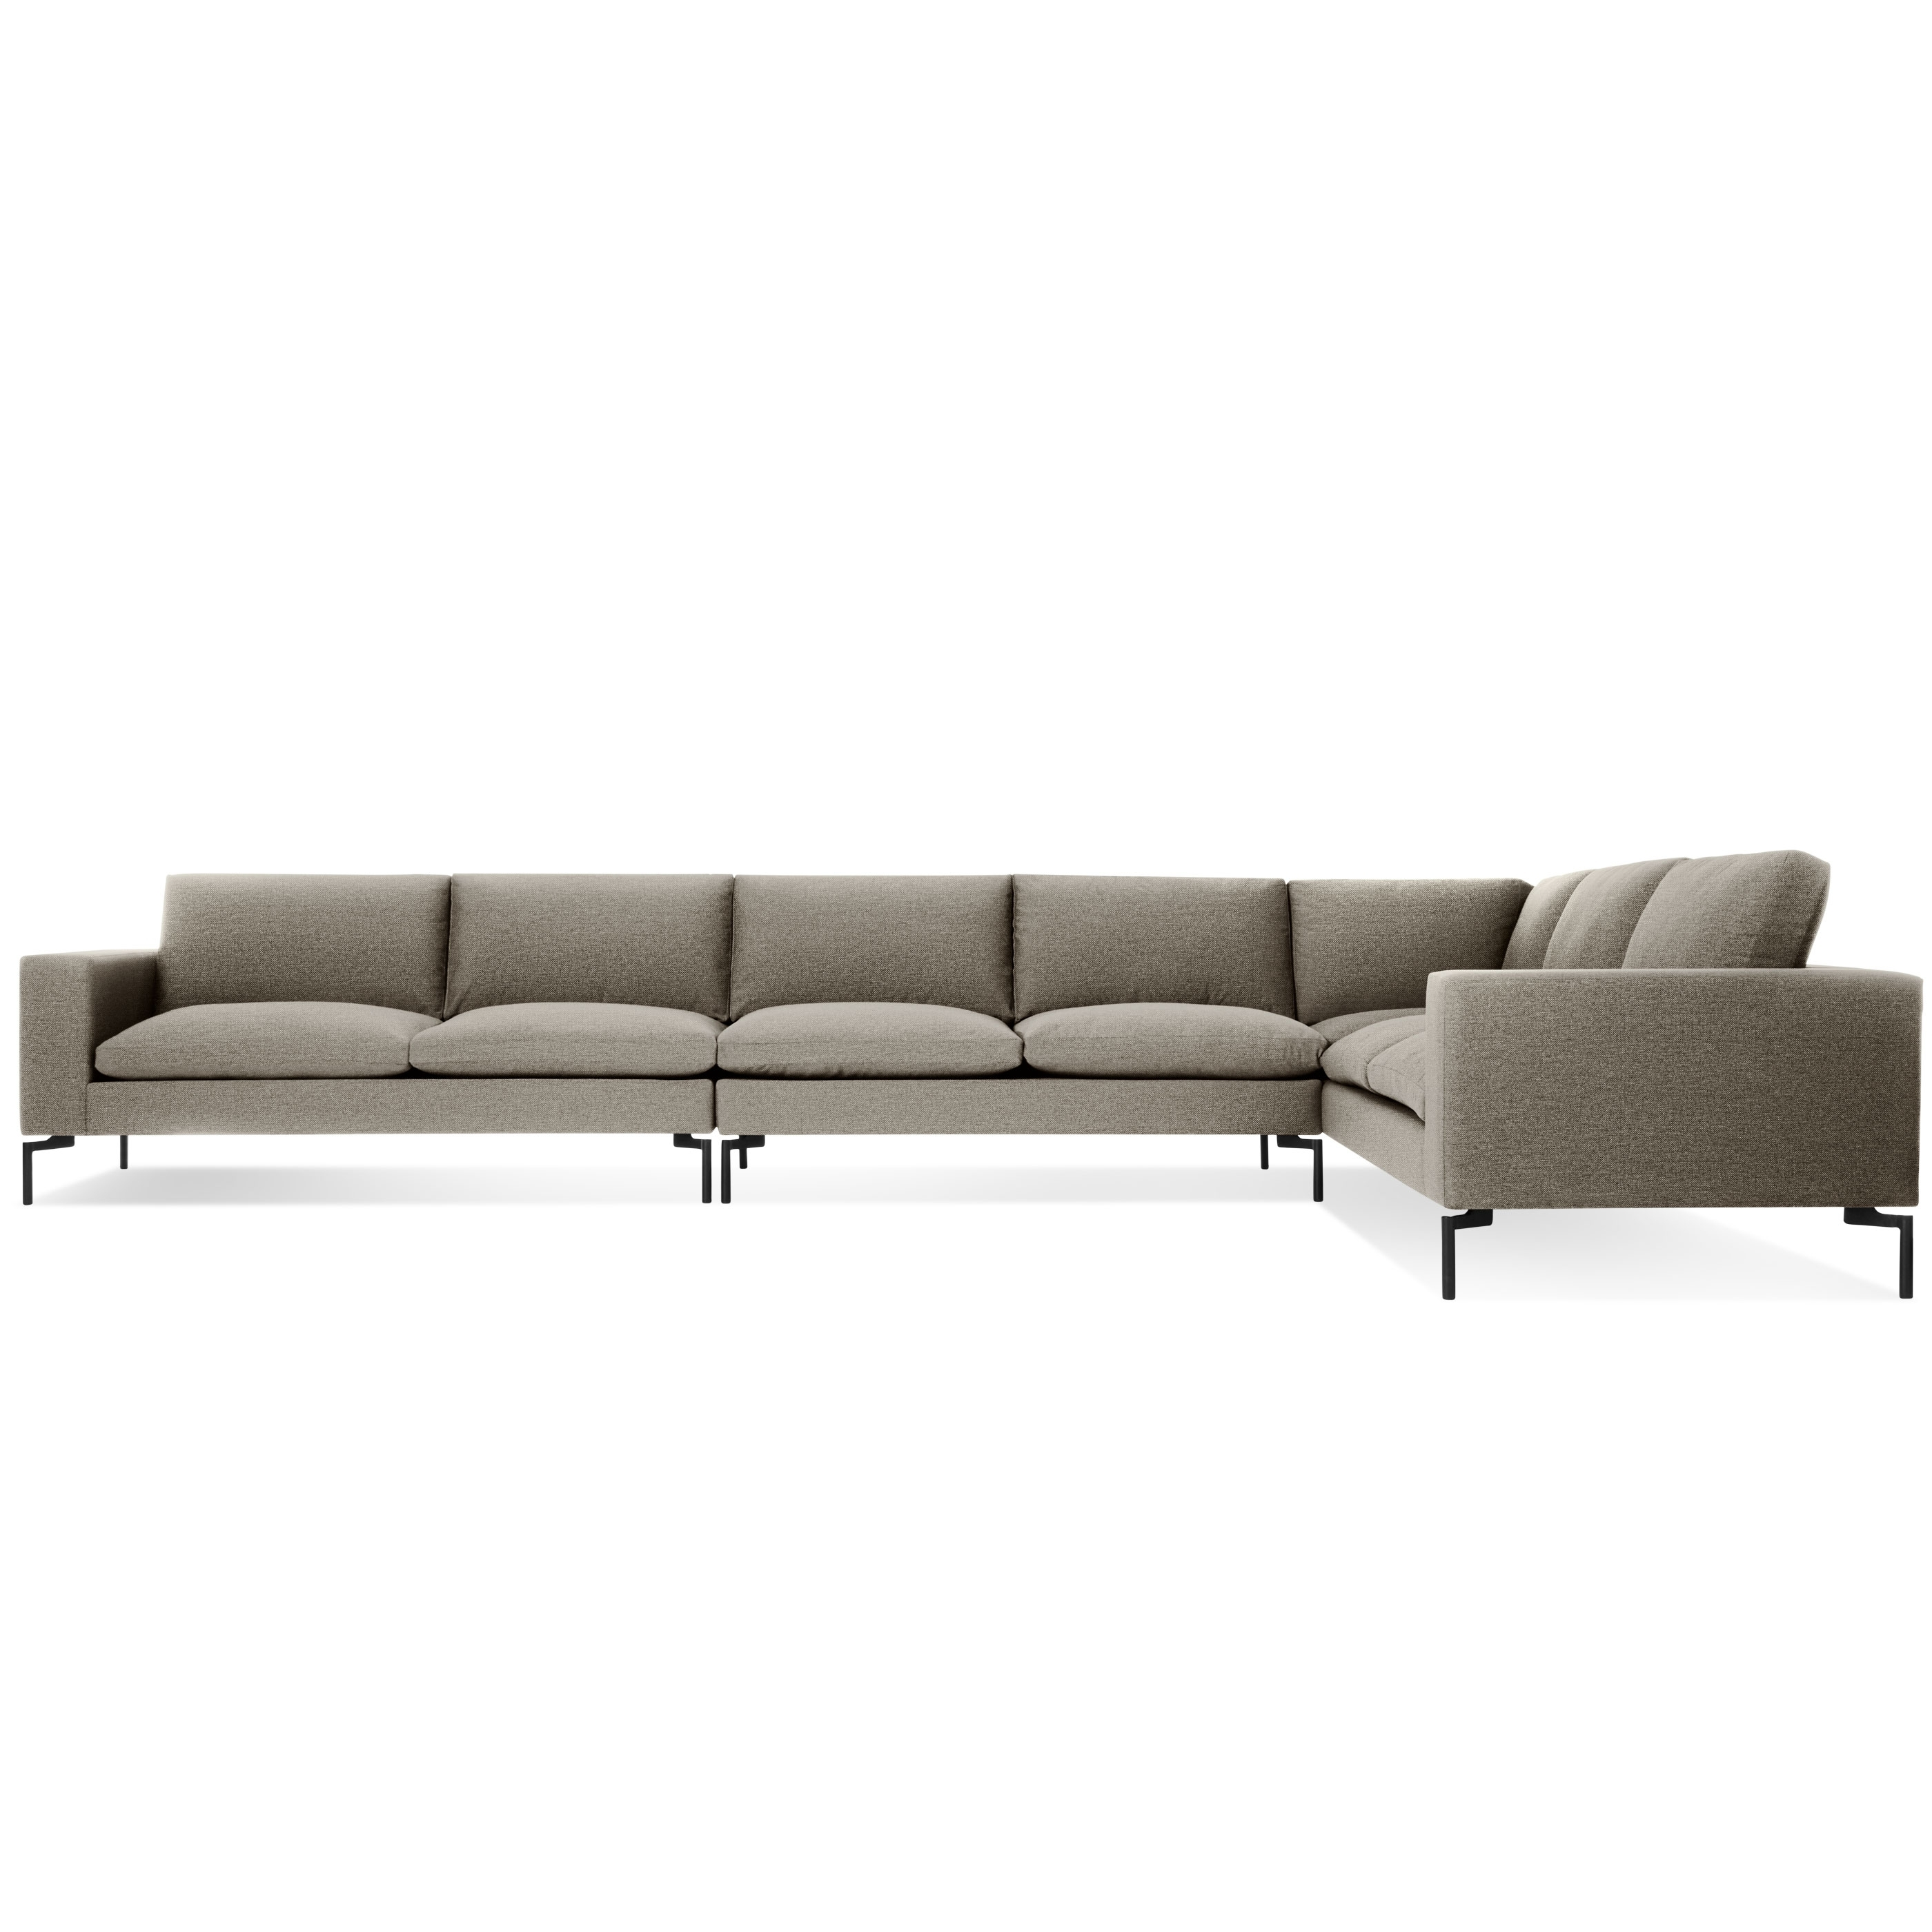 Nova Scotia Sectional Sofas Intended For Well Known New Standard Large Sectional Sofa – Large Sofas (View 9 of 20)